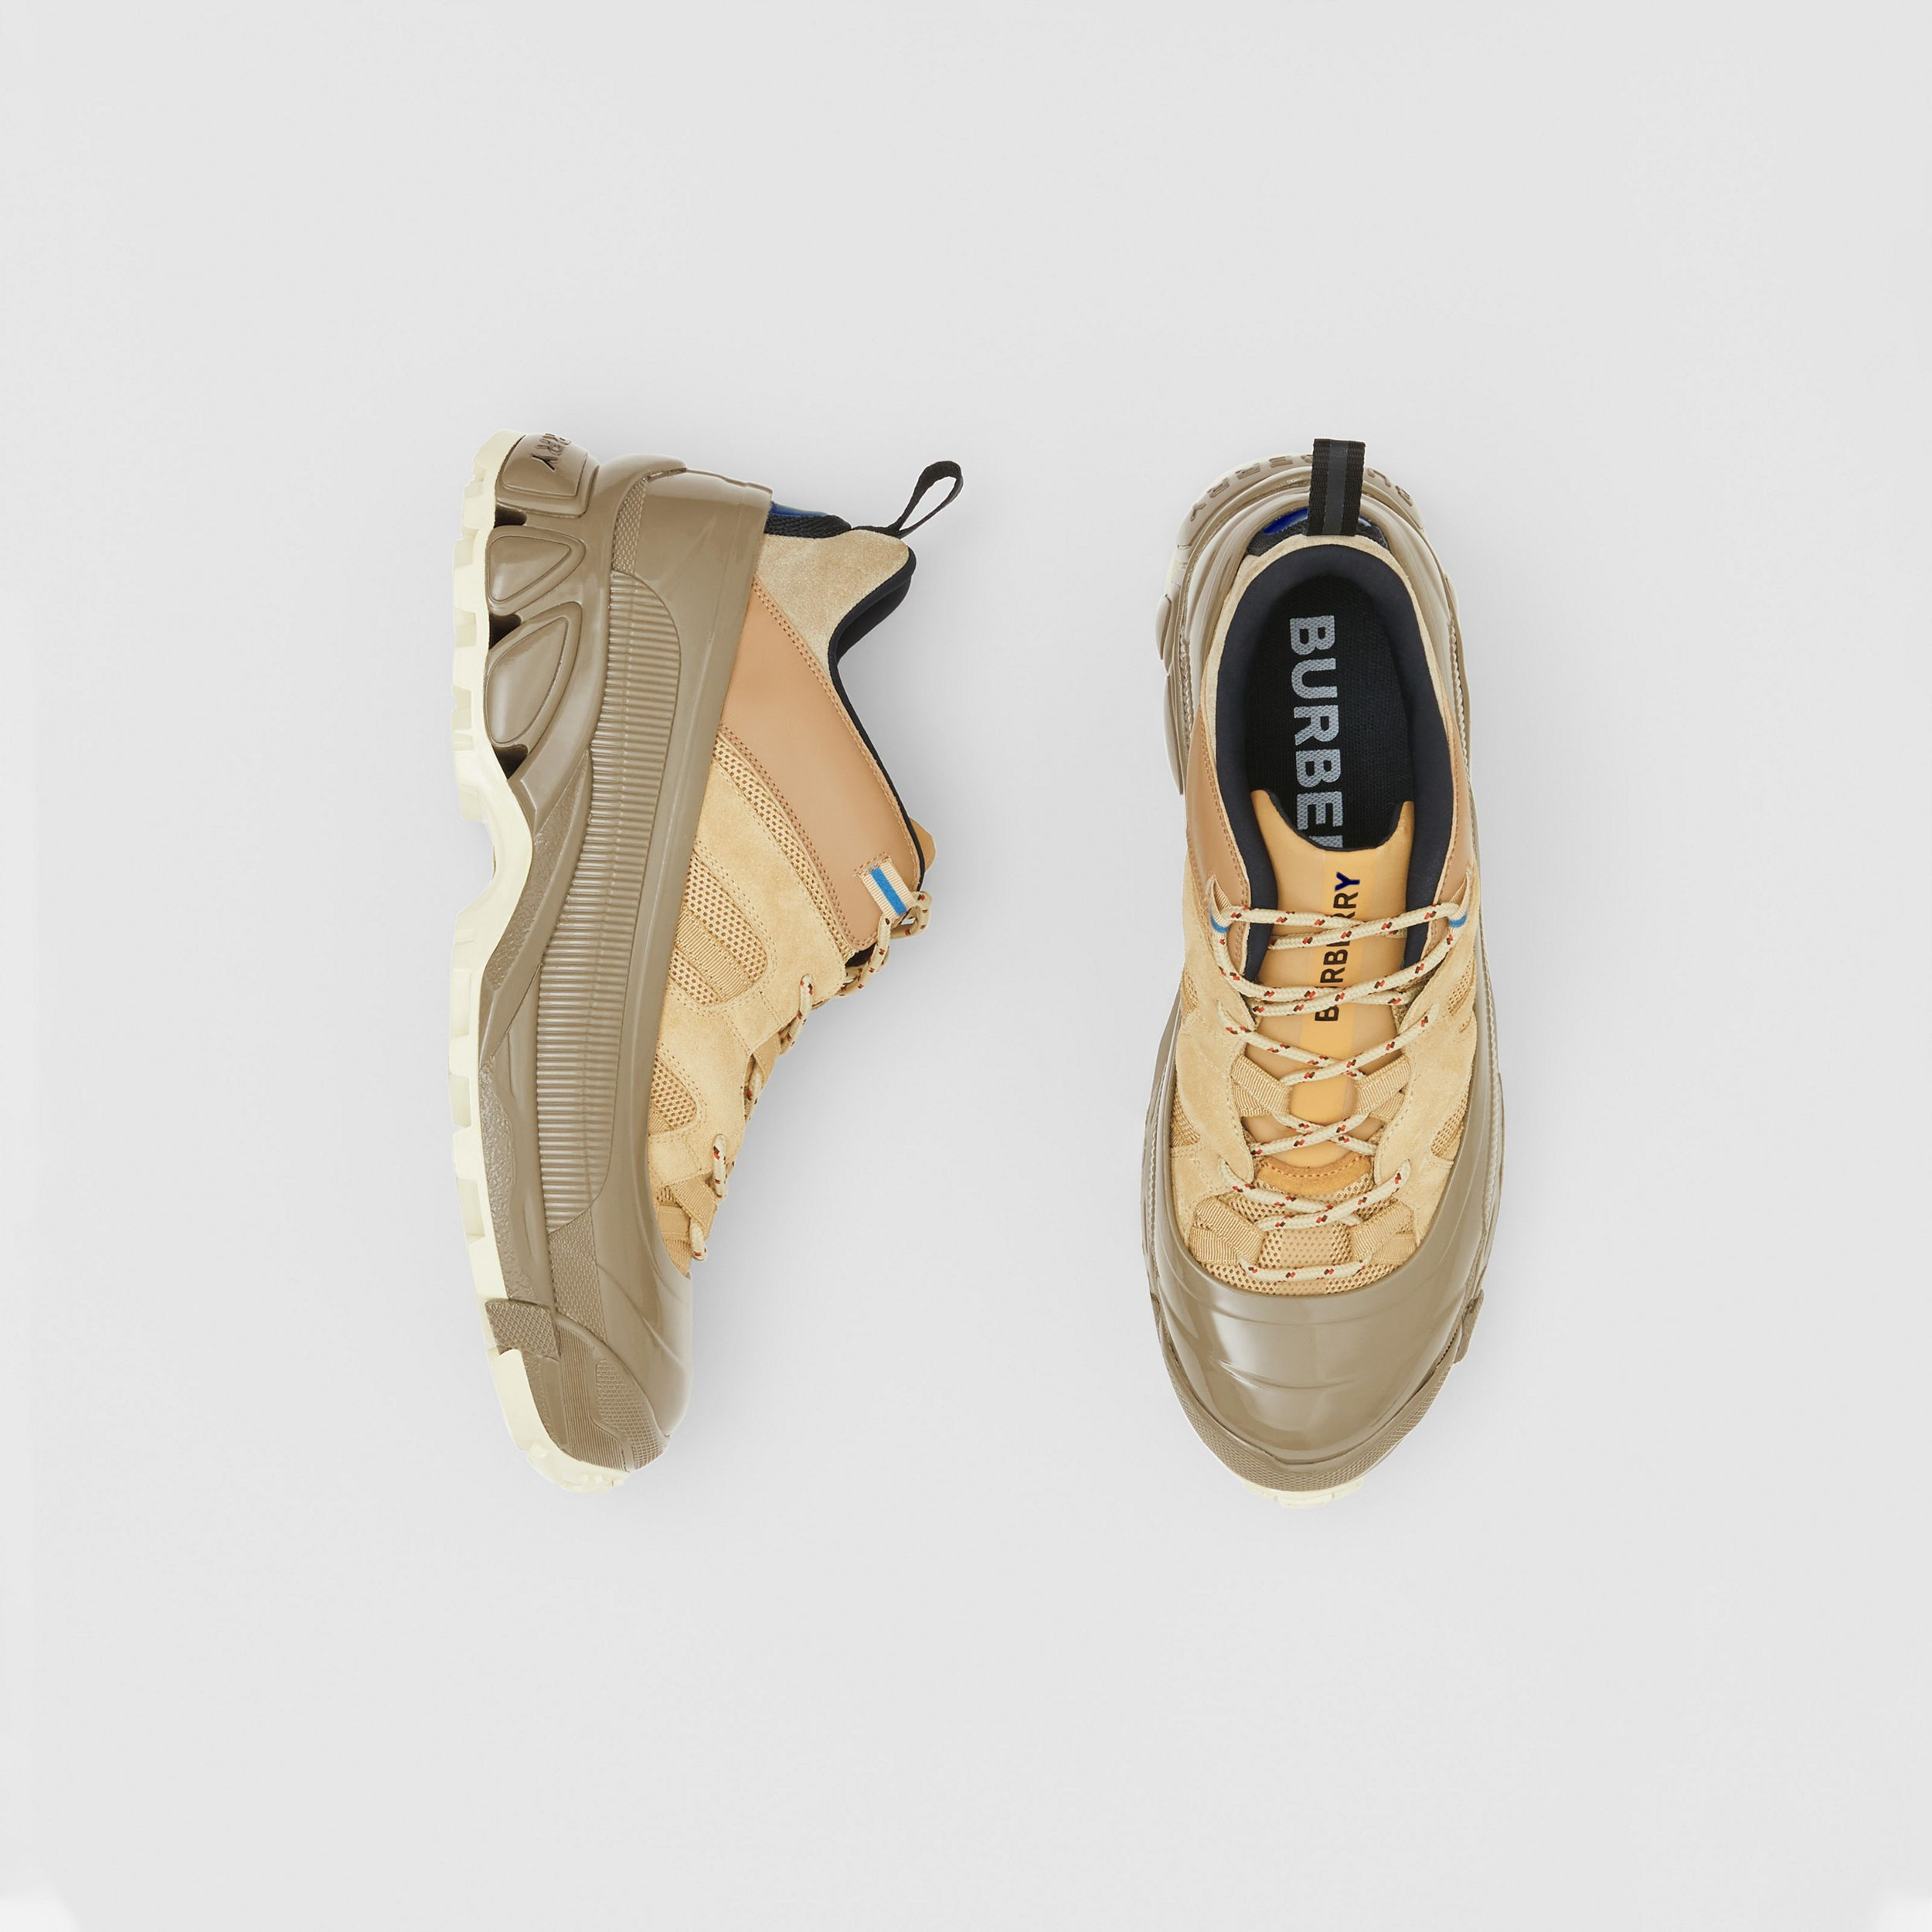 Suede, Mesh and Leather Arthur Sneakers in Beige - Men | Burberry - 1